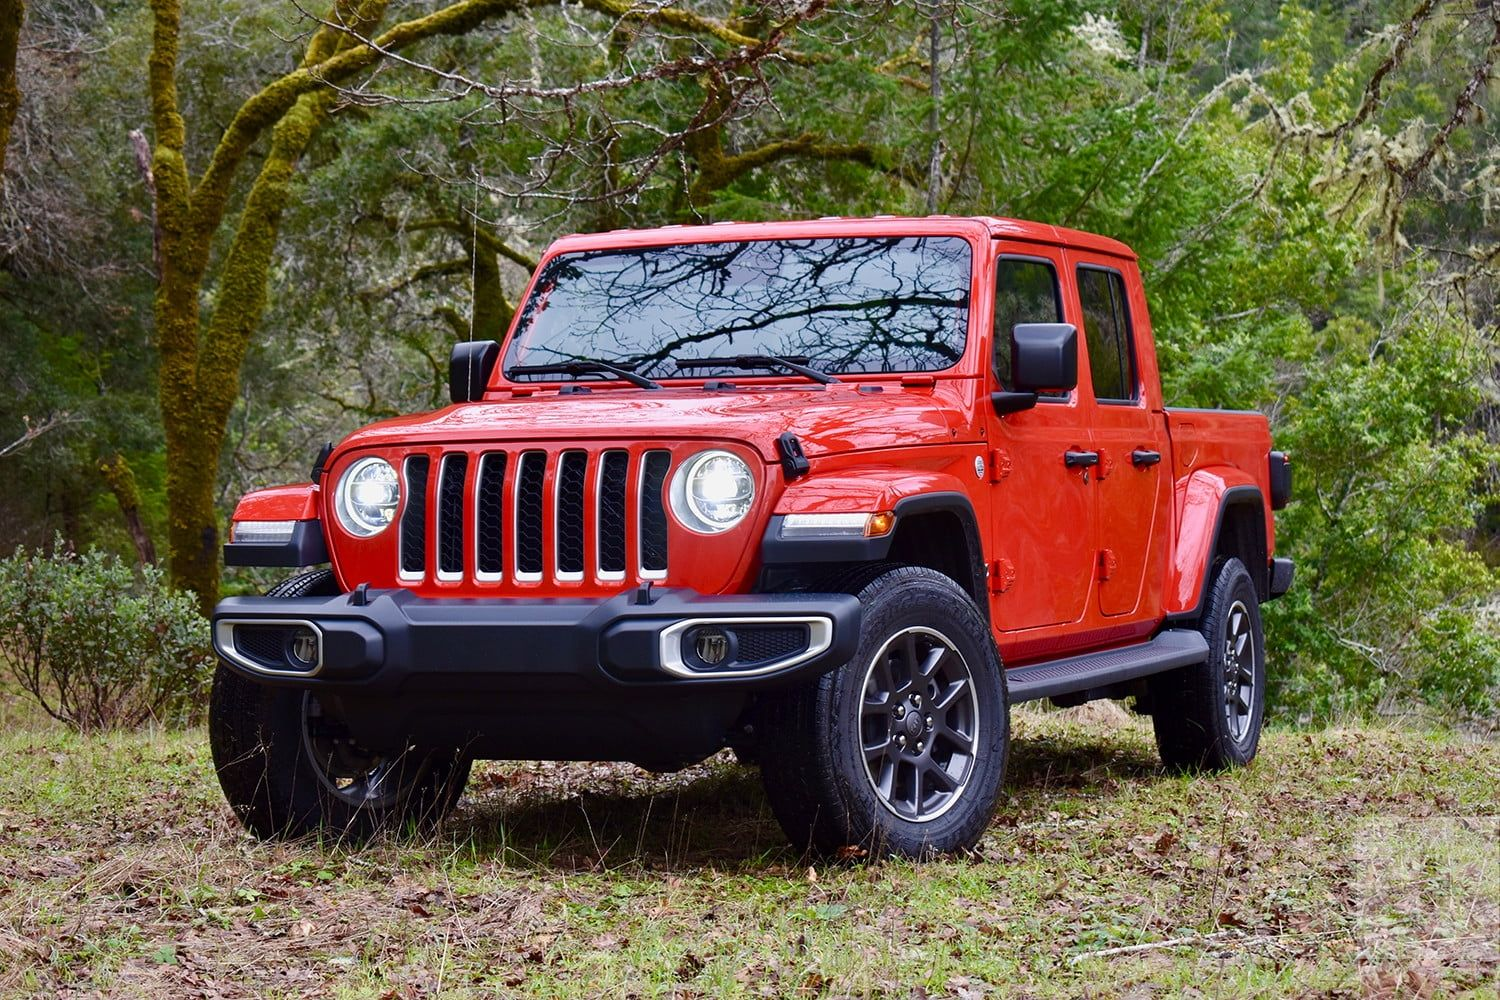 2021 Jeep Gladiator Hercules Everything We Know So Far Jeep